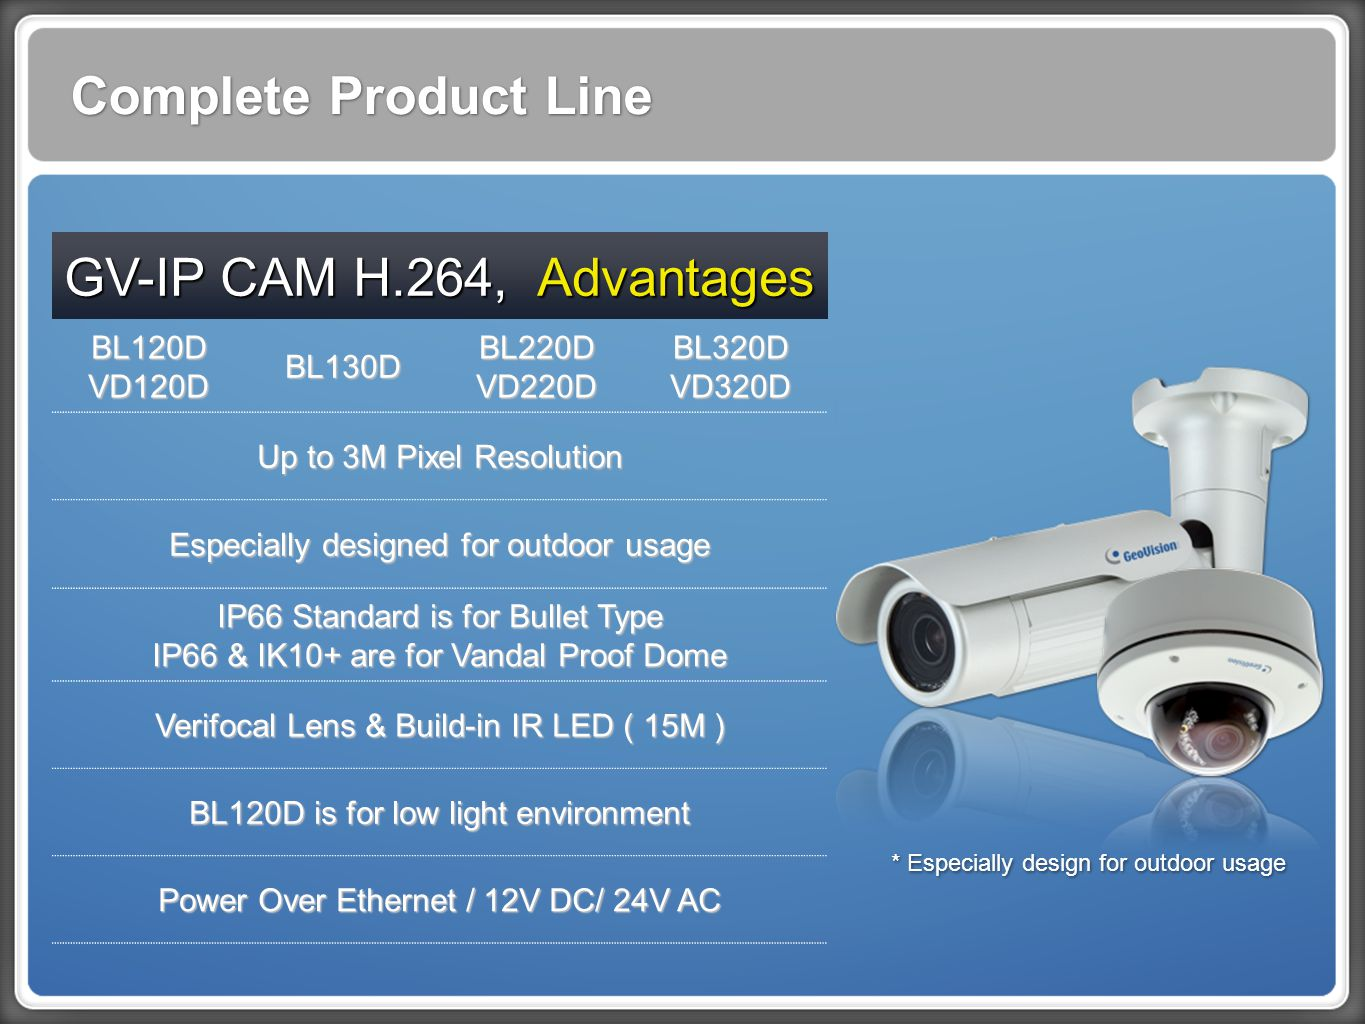 Complete Product Line GV-IP CAM H.264, Advantages BL120DVD120DBL130DBL220DVD220DBL320DVD320D Up to 3M Pixel Resolution Especially designed for outdoor usage IP66 Standard is for Bullet Type IP66 & IK10+ are for Vandal Proof Dome Verifocal Lens & Build-in IR LED ( 15M ) BL120D is for low light environment Power Over Ethernet / 12V DC/ 24V AC * Especially design for outdoor usage